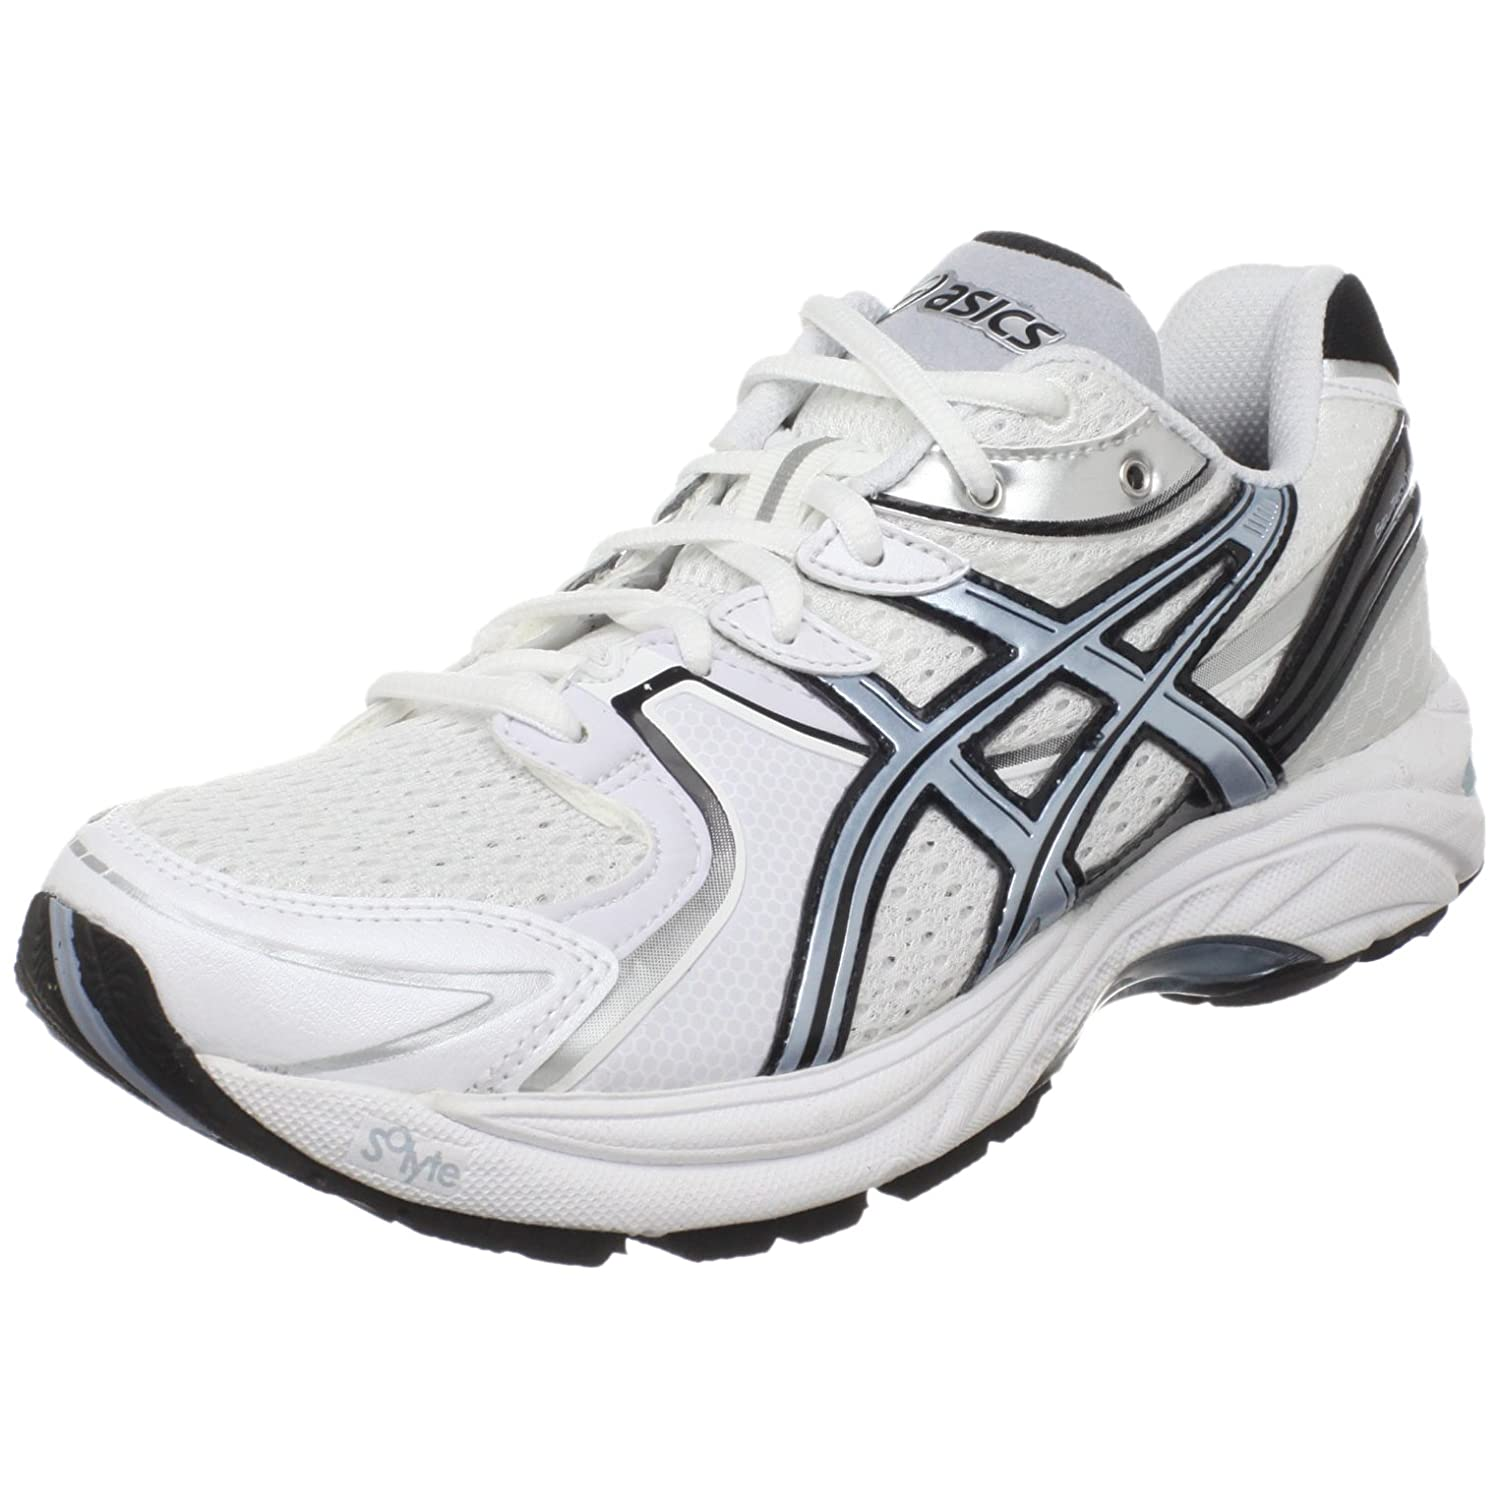 best asics walking shoes for